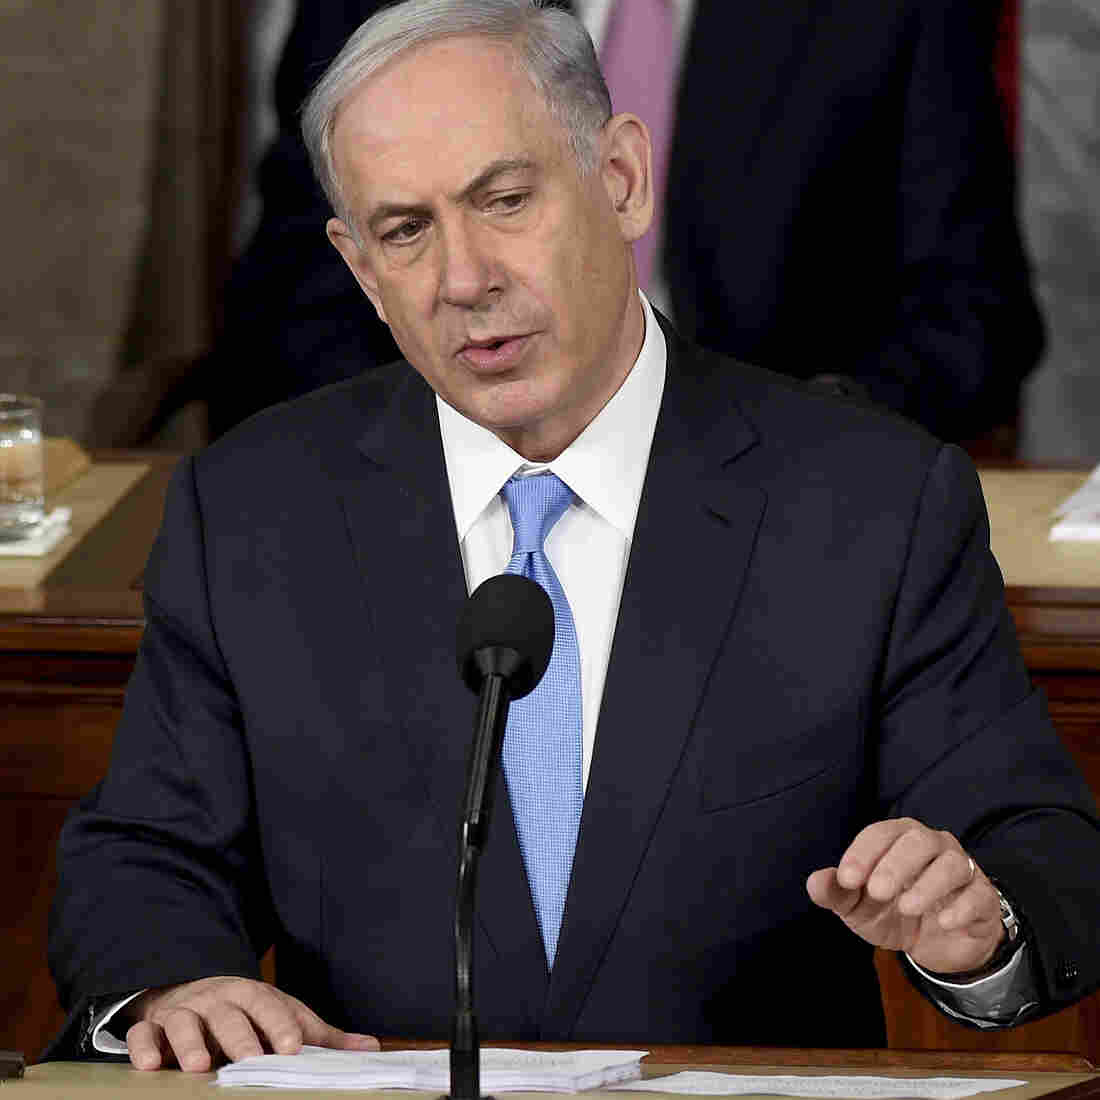 In Speech To Congress, Netanyahu Blasts 'A Very Bad Deal' With Iran